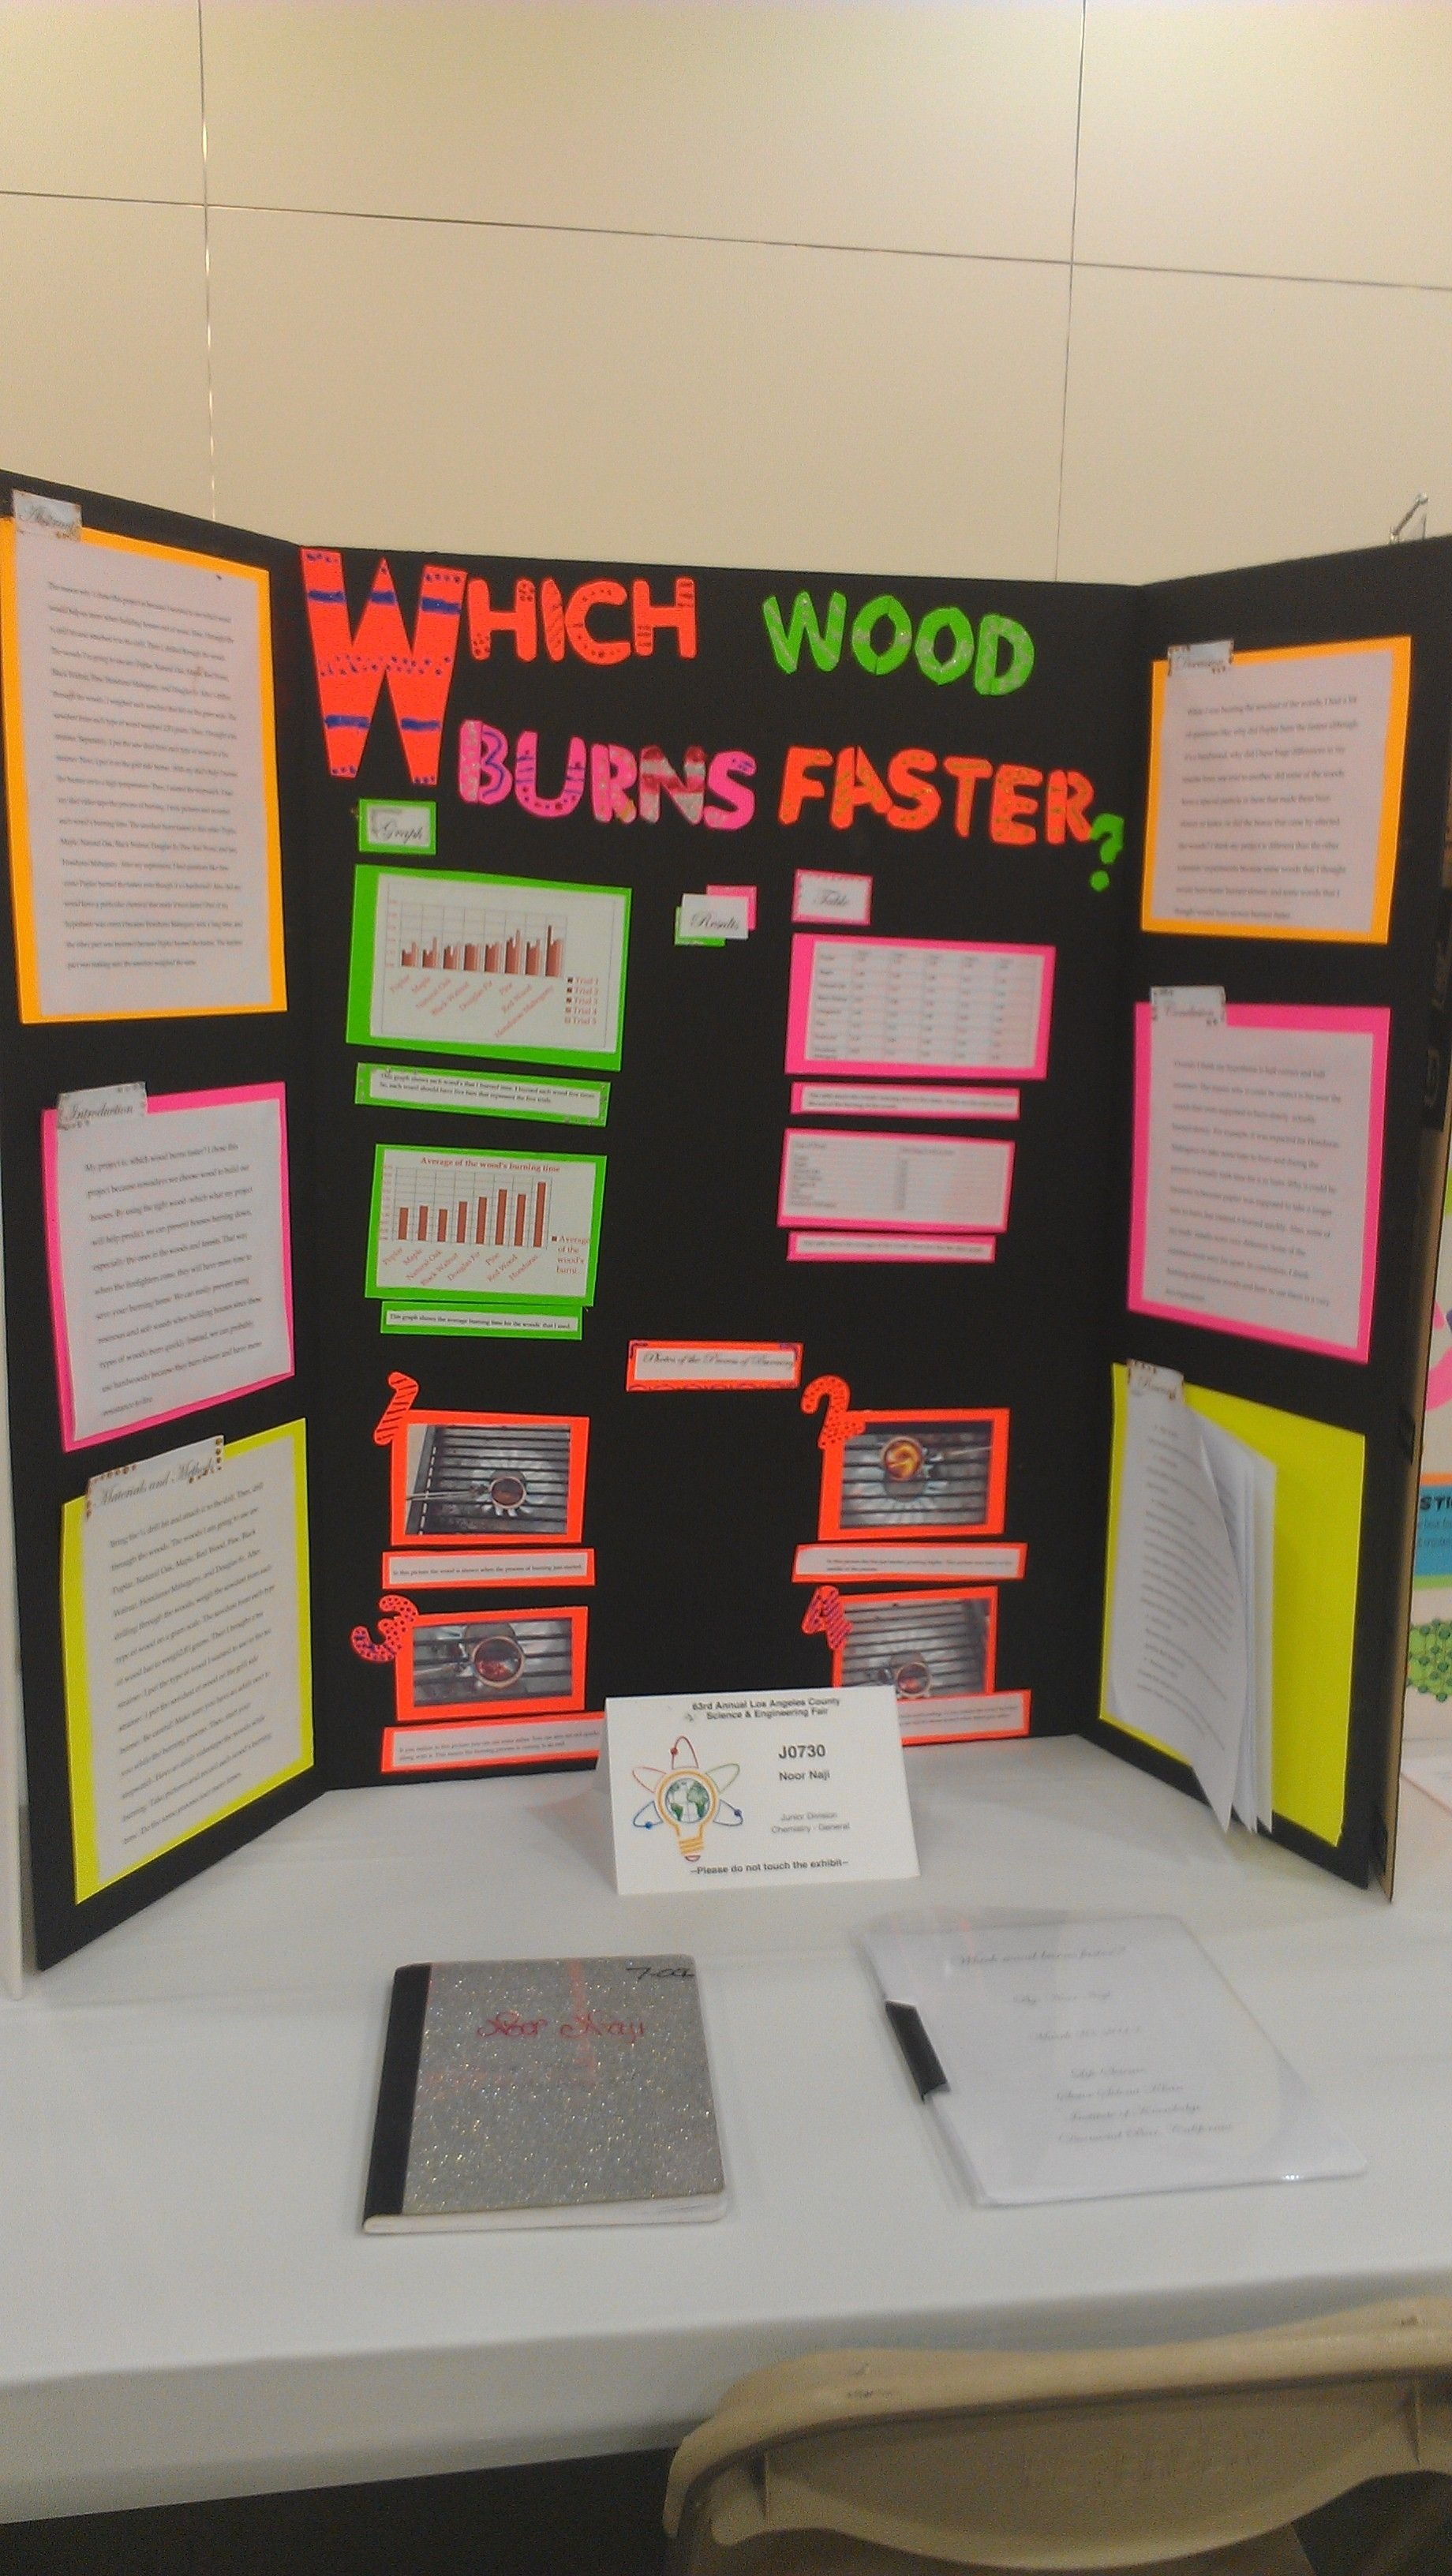 10 Famous Seventh Grade Science Project Ideas 7th grade science fair projectnoor naji 2013 la county science 3 2020